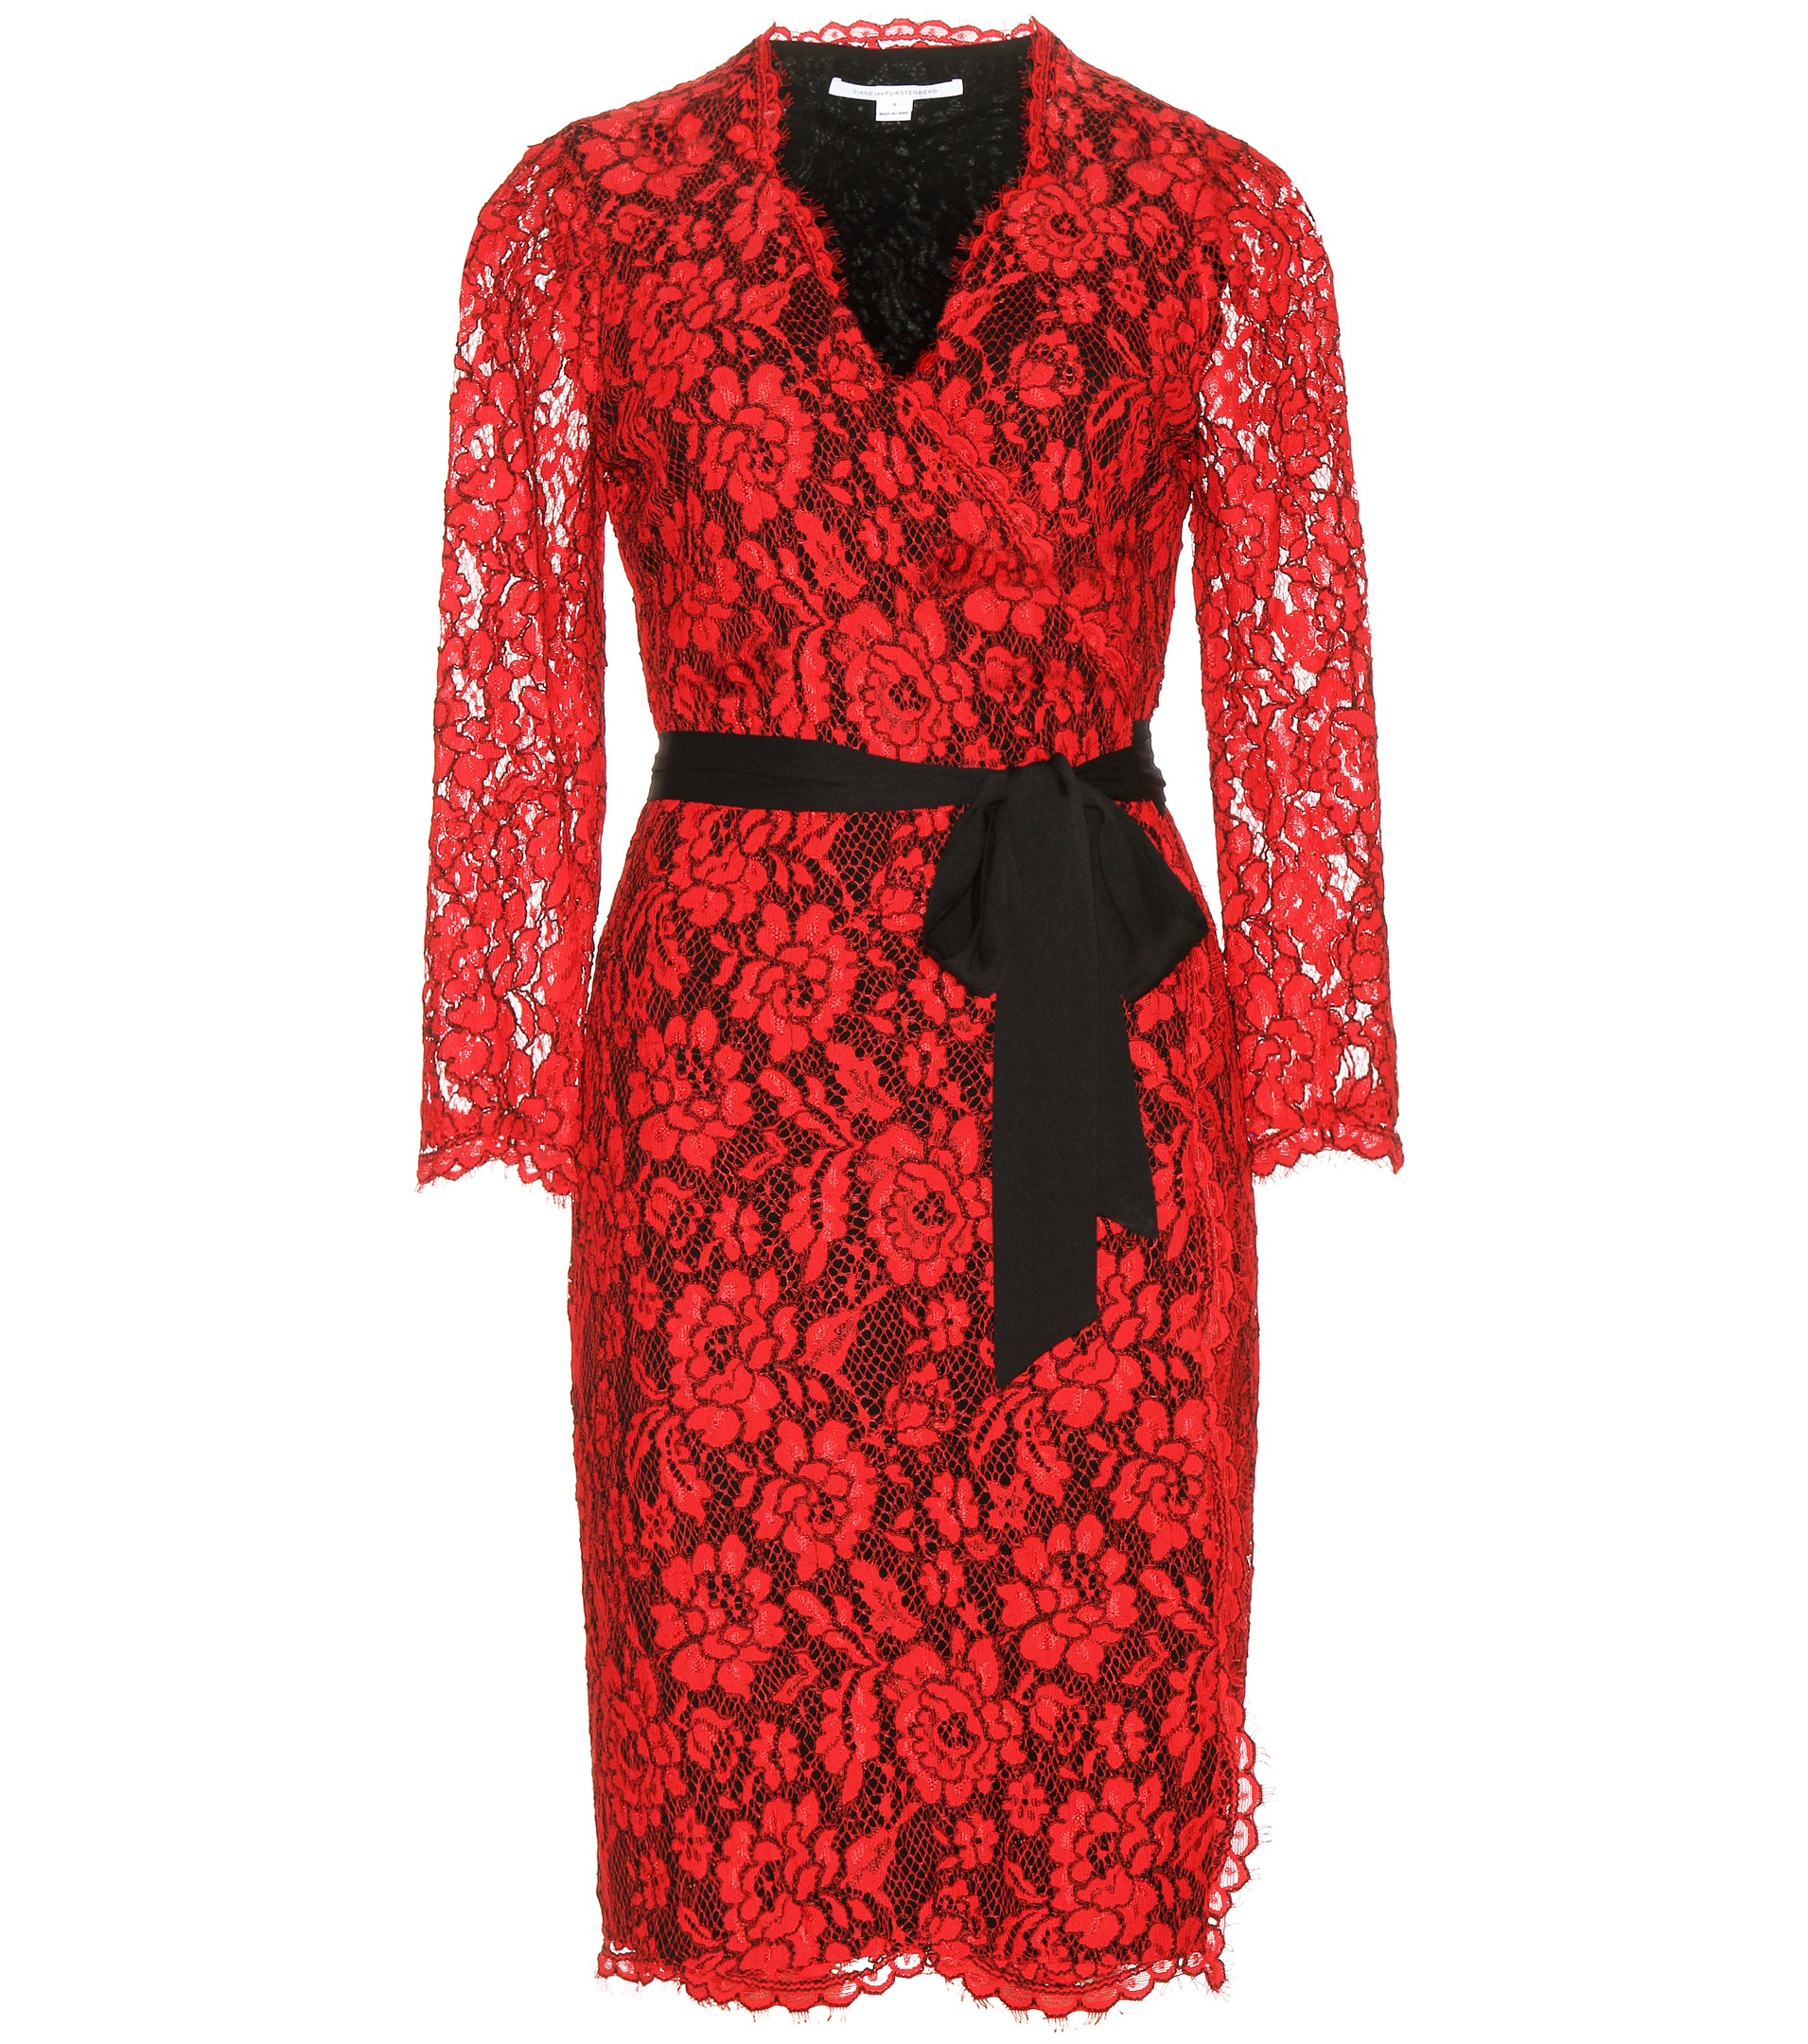 Diane von Furstenberg Julianna red lace wrap dress with black self tie belt 749 dollars